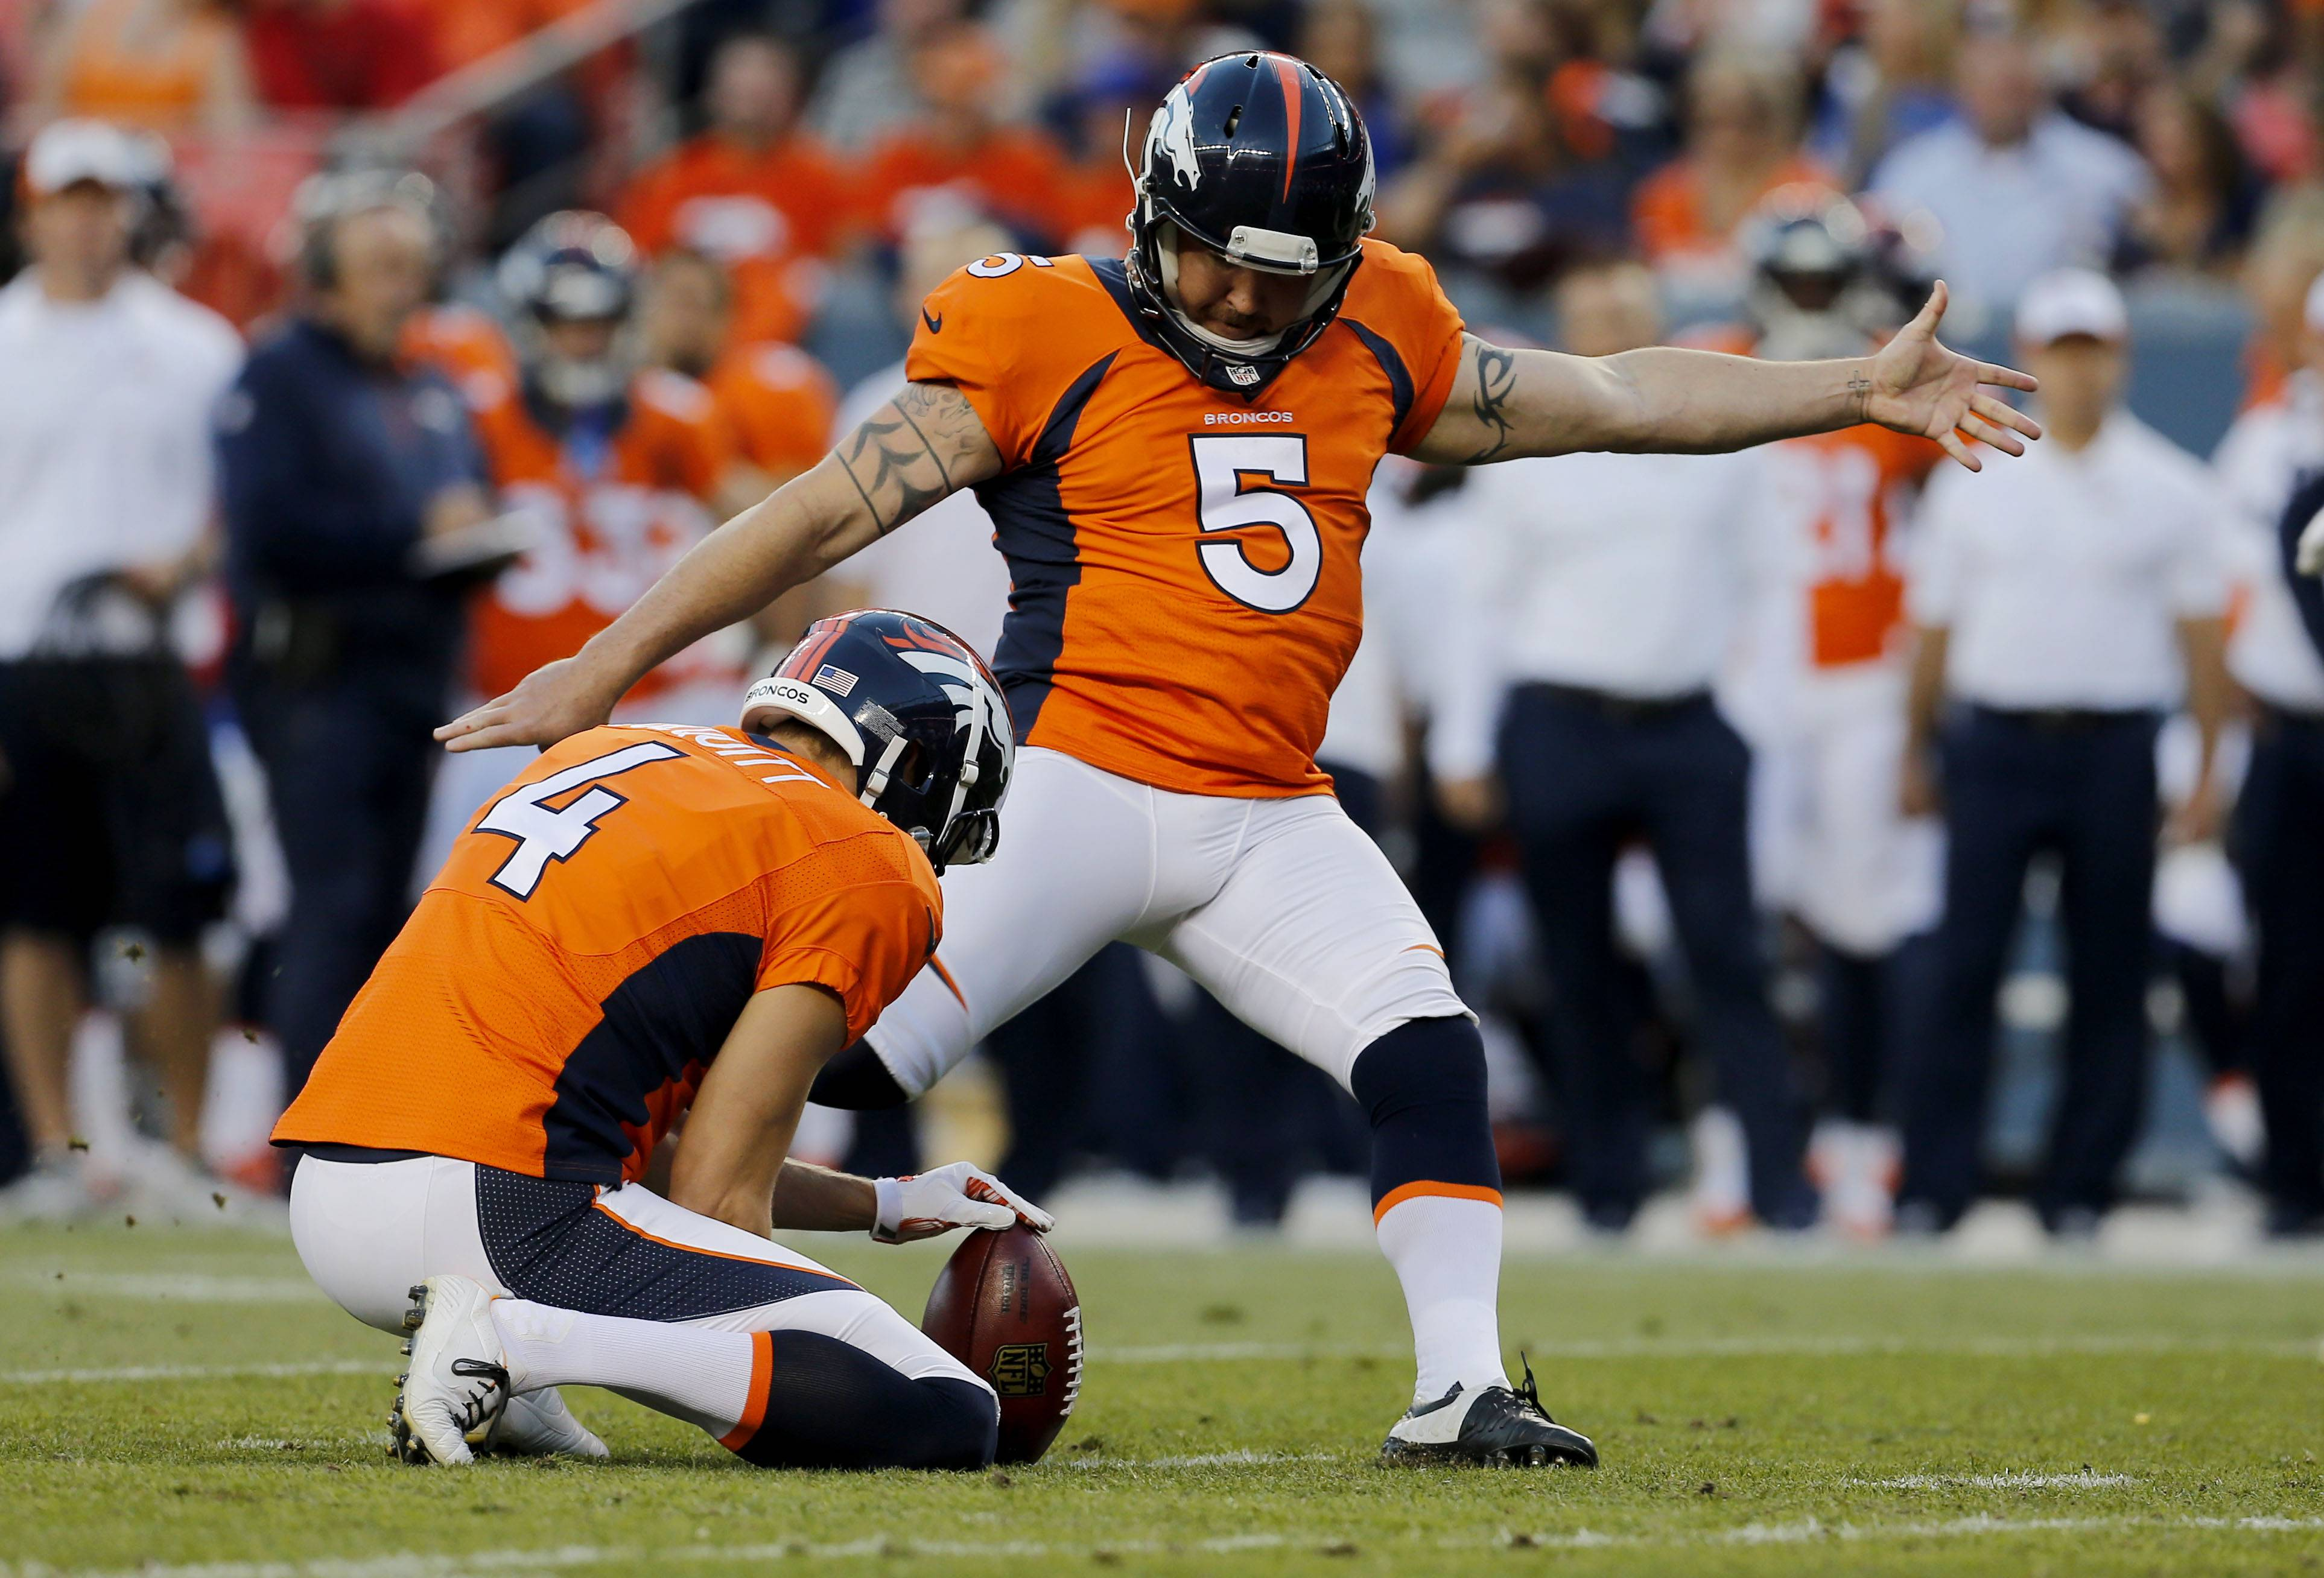 Denver Broncos kicker Matt Prater has been in the NFL's drug program, which includes alcohol, since a DUI arrest on Aug. 12, 2011.